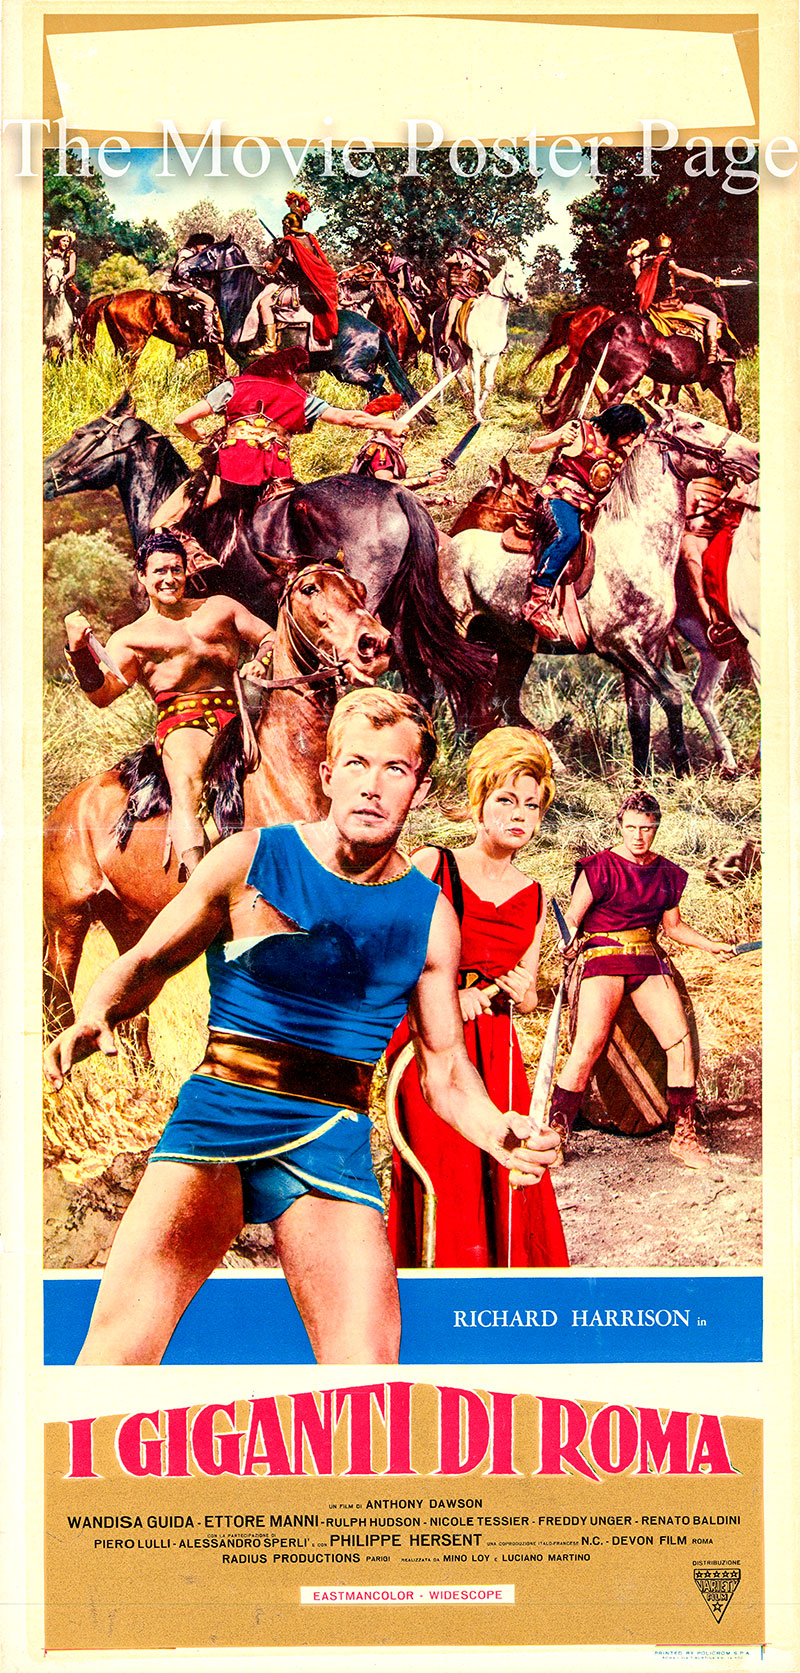 Pictured is an Italian locandina poster for the 1964 Antonio Margheriti film Giants of Rome starring Richard Harrison as Claudius Marcellus.